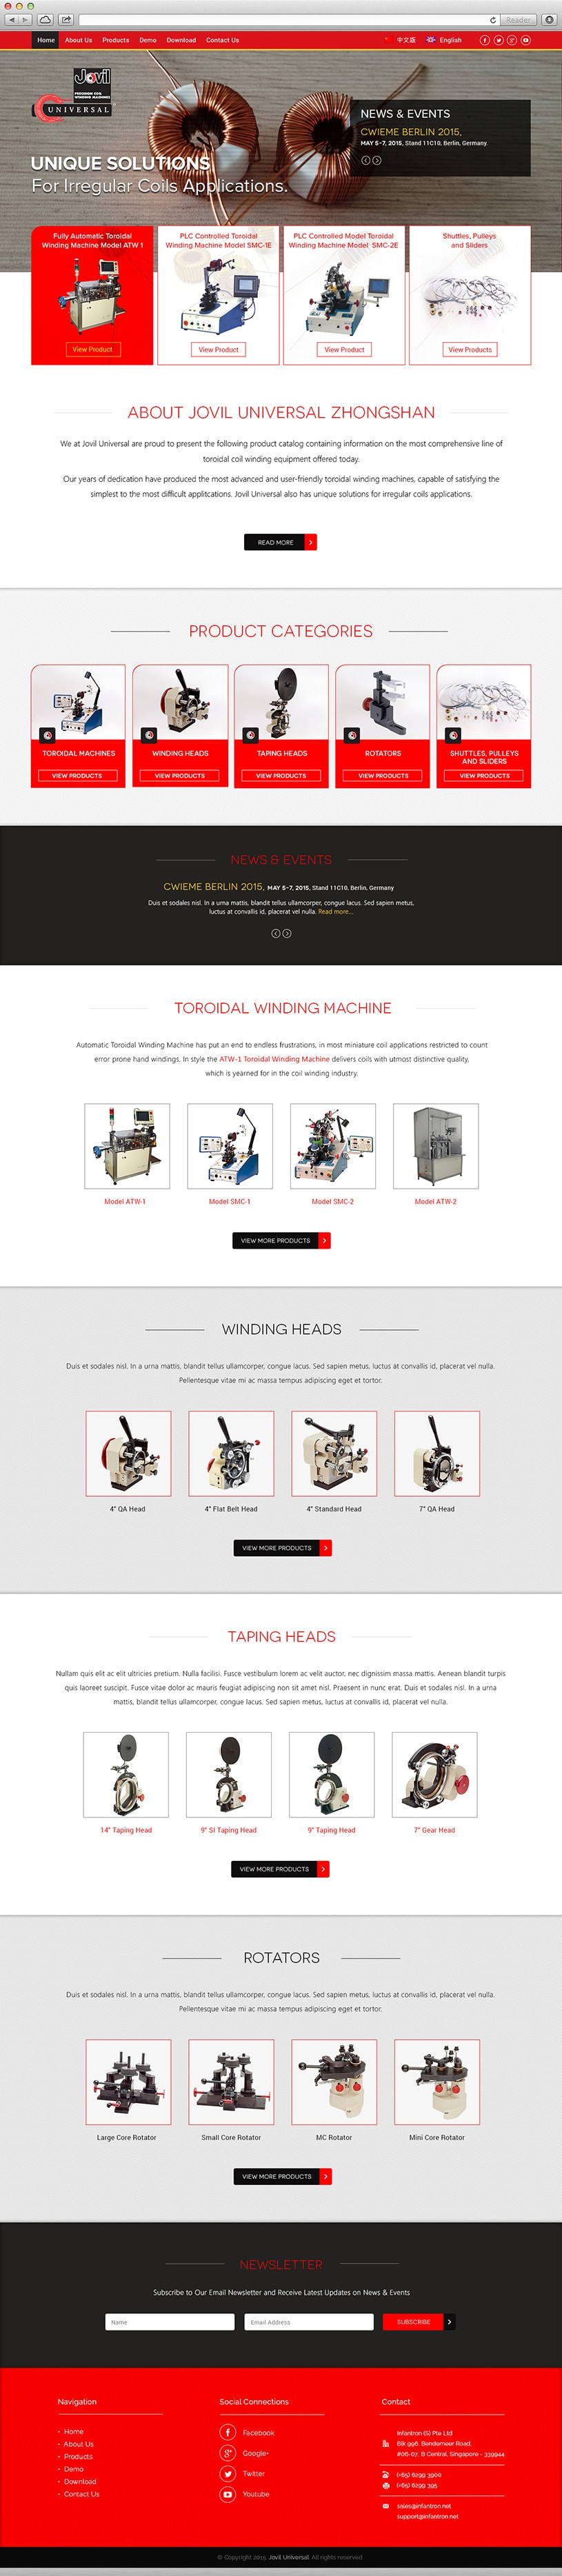 jovil_universal_website_design